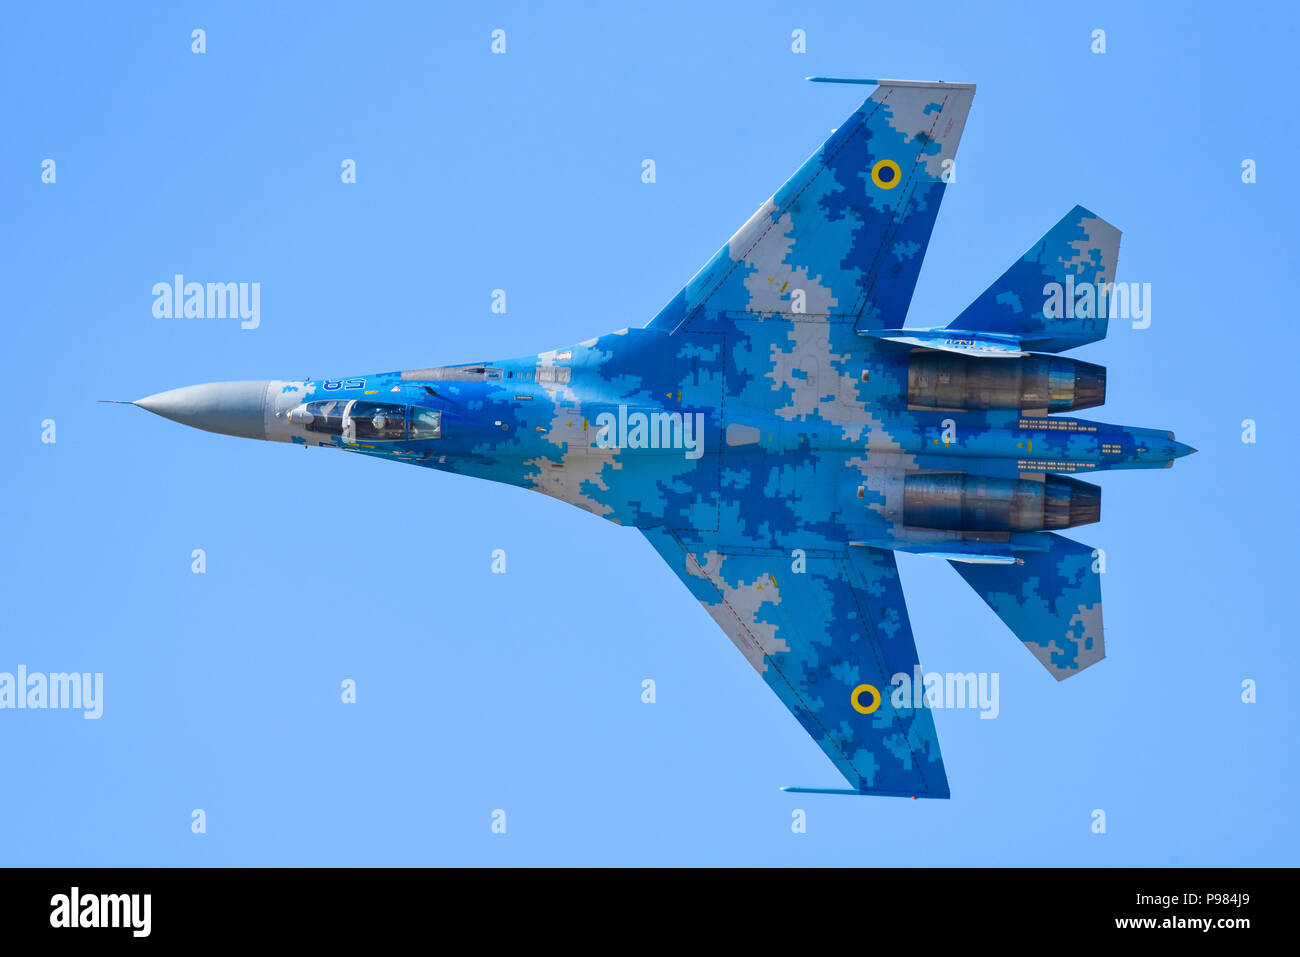 ukrainian-sukhoi-su-27-flanker-at-royal-international-air-tattoo-riat-2018-raf-fairford-russian-jet-fighter-flying-airshow-air-display-P984J9.jpg